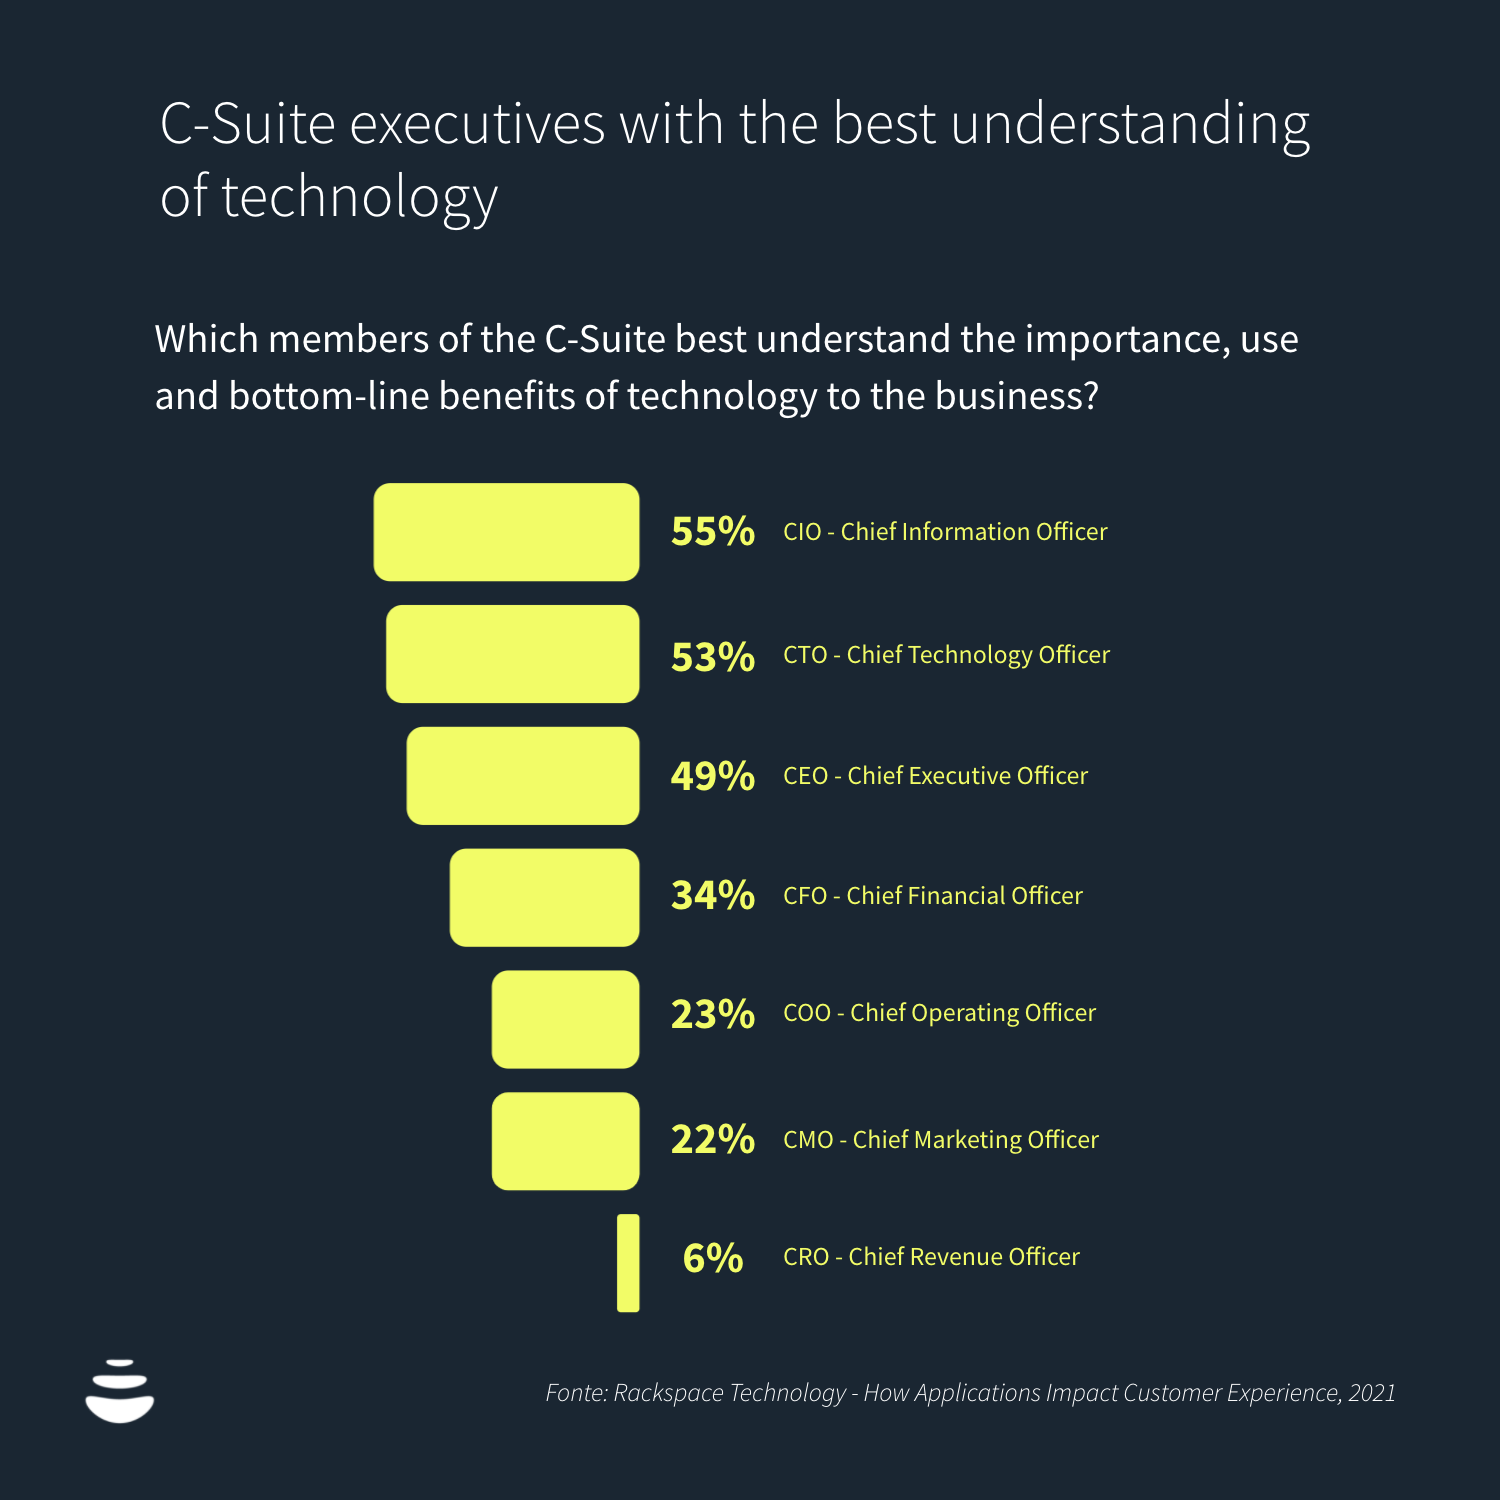 C-Suite executives with the best understanding of technology